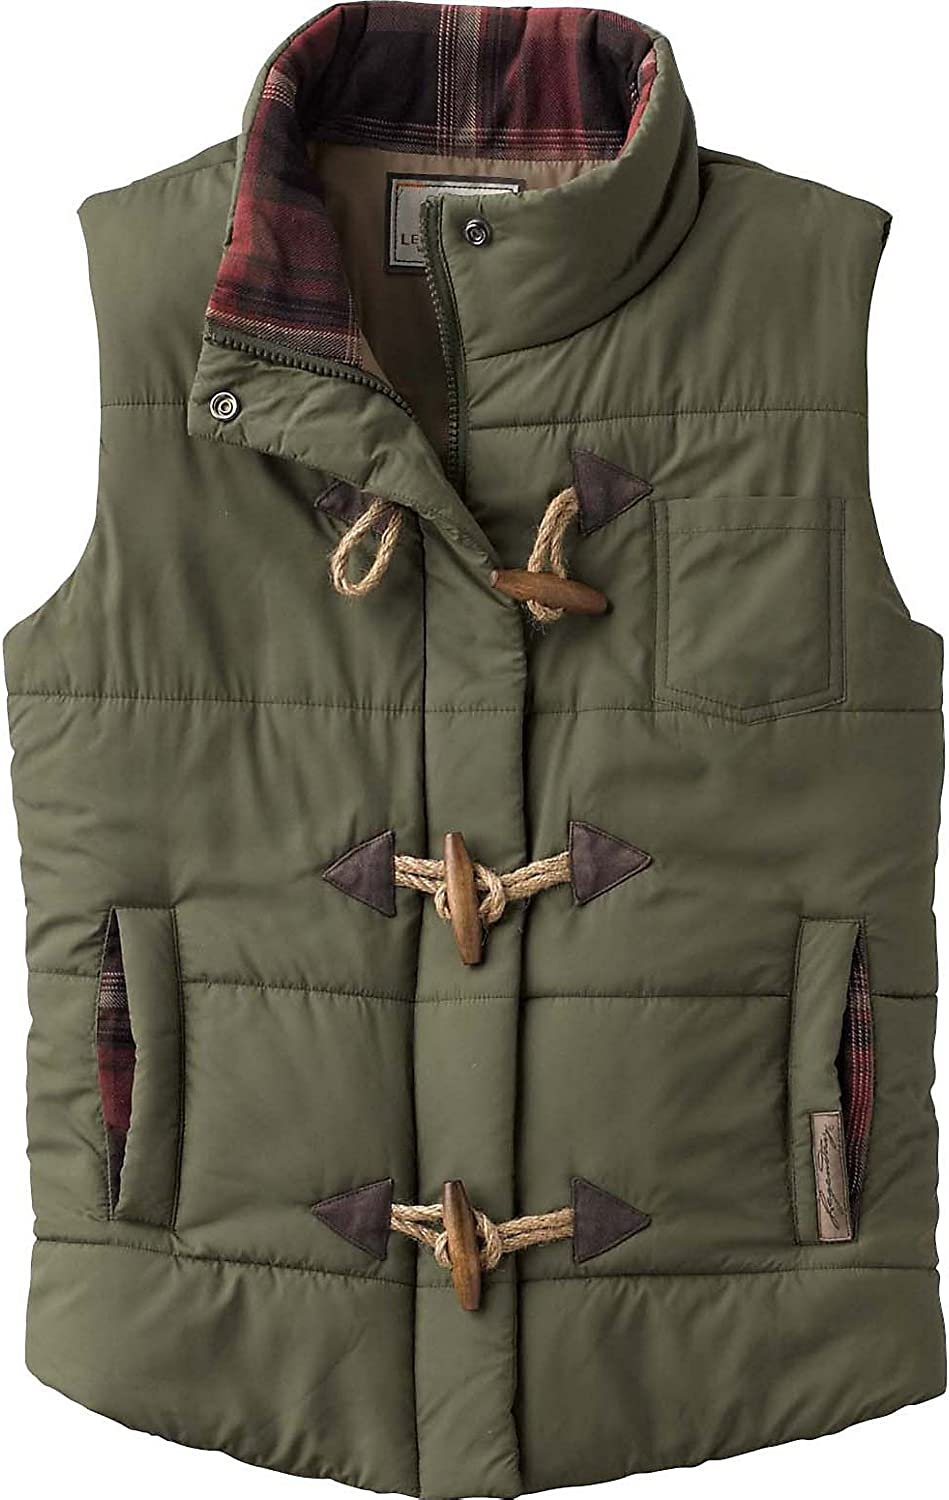 Legendary Whitetails Womens Quilted Vest: Clothing